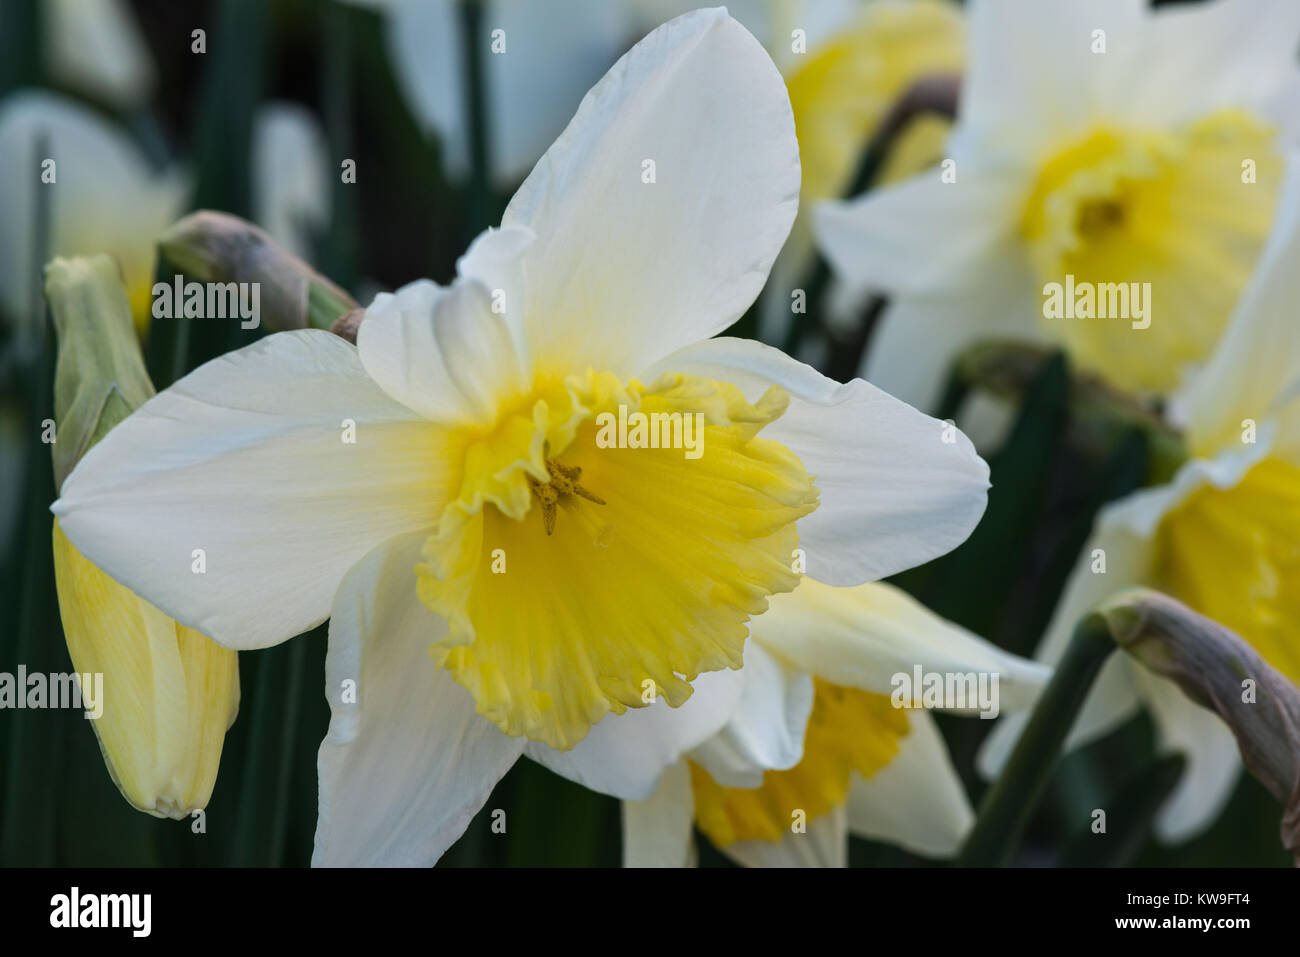 Daffodils Flowering In Early Spring In An English Garden In Close Up